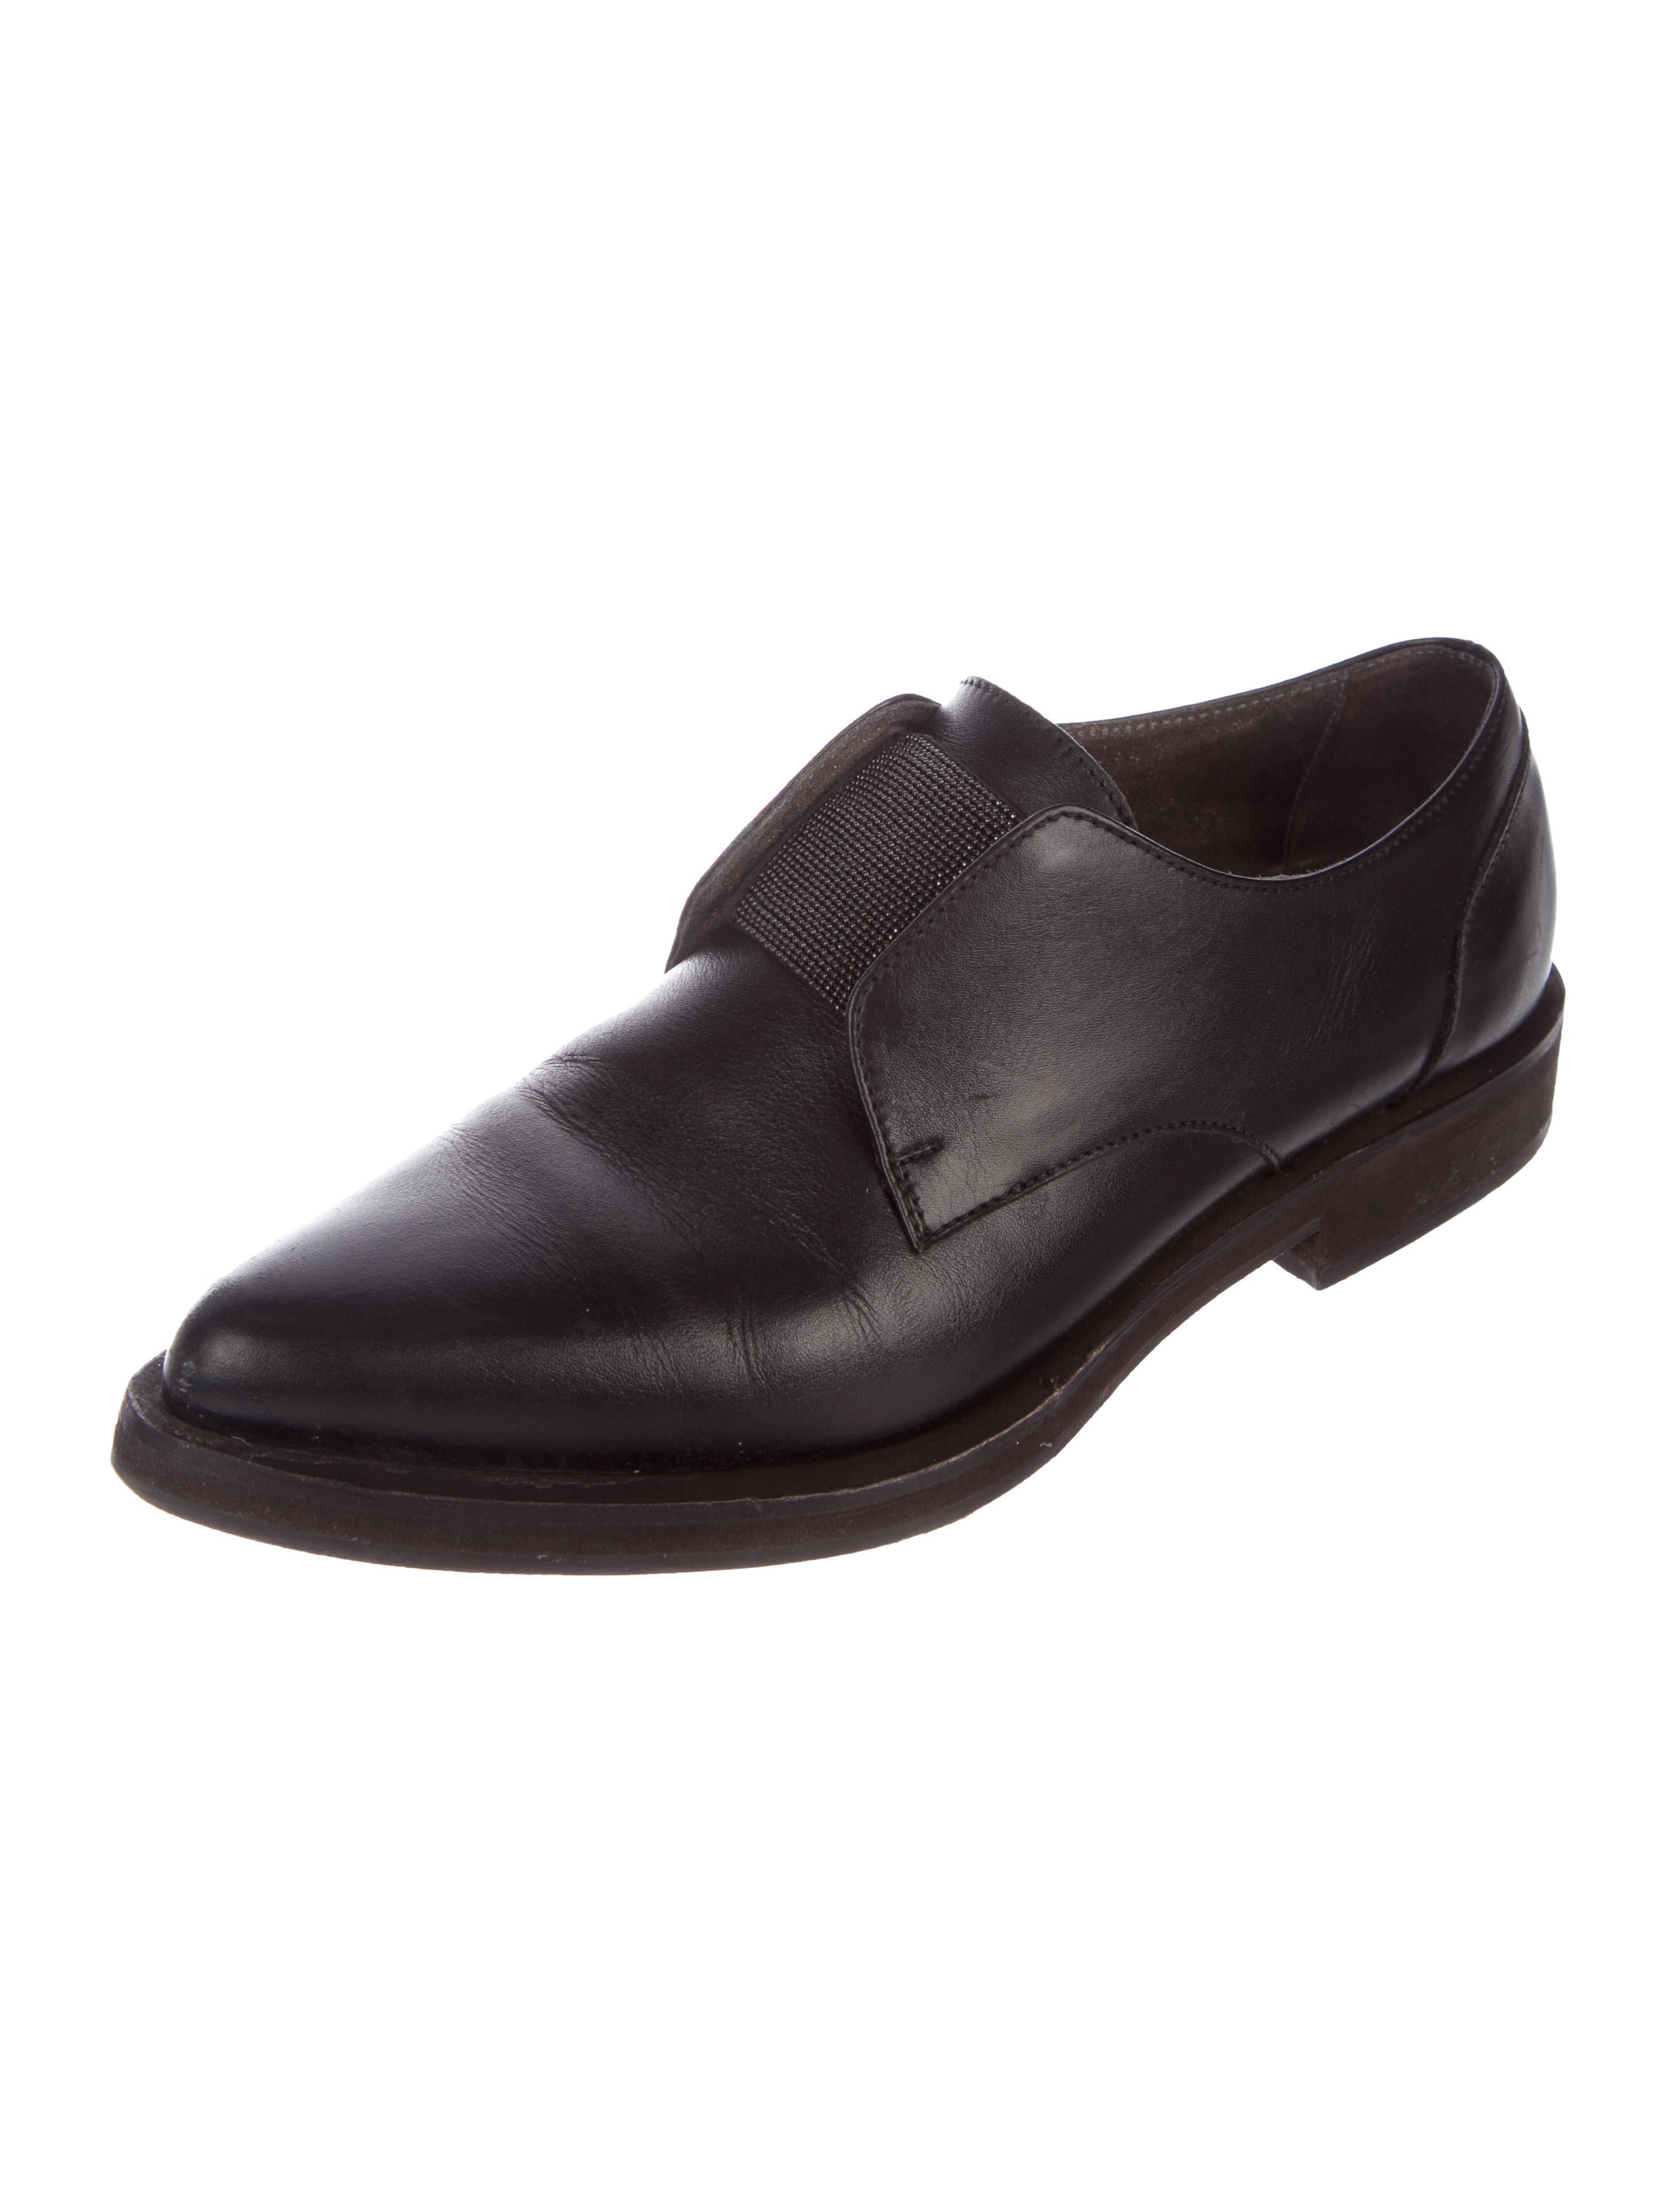 Brunello Cucinelli Monili Leather Oxfords best seller cheap price buy cheap really outlet low shipping free shipping extremely Lm4z0Ro